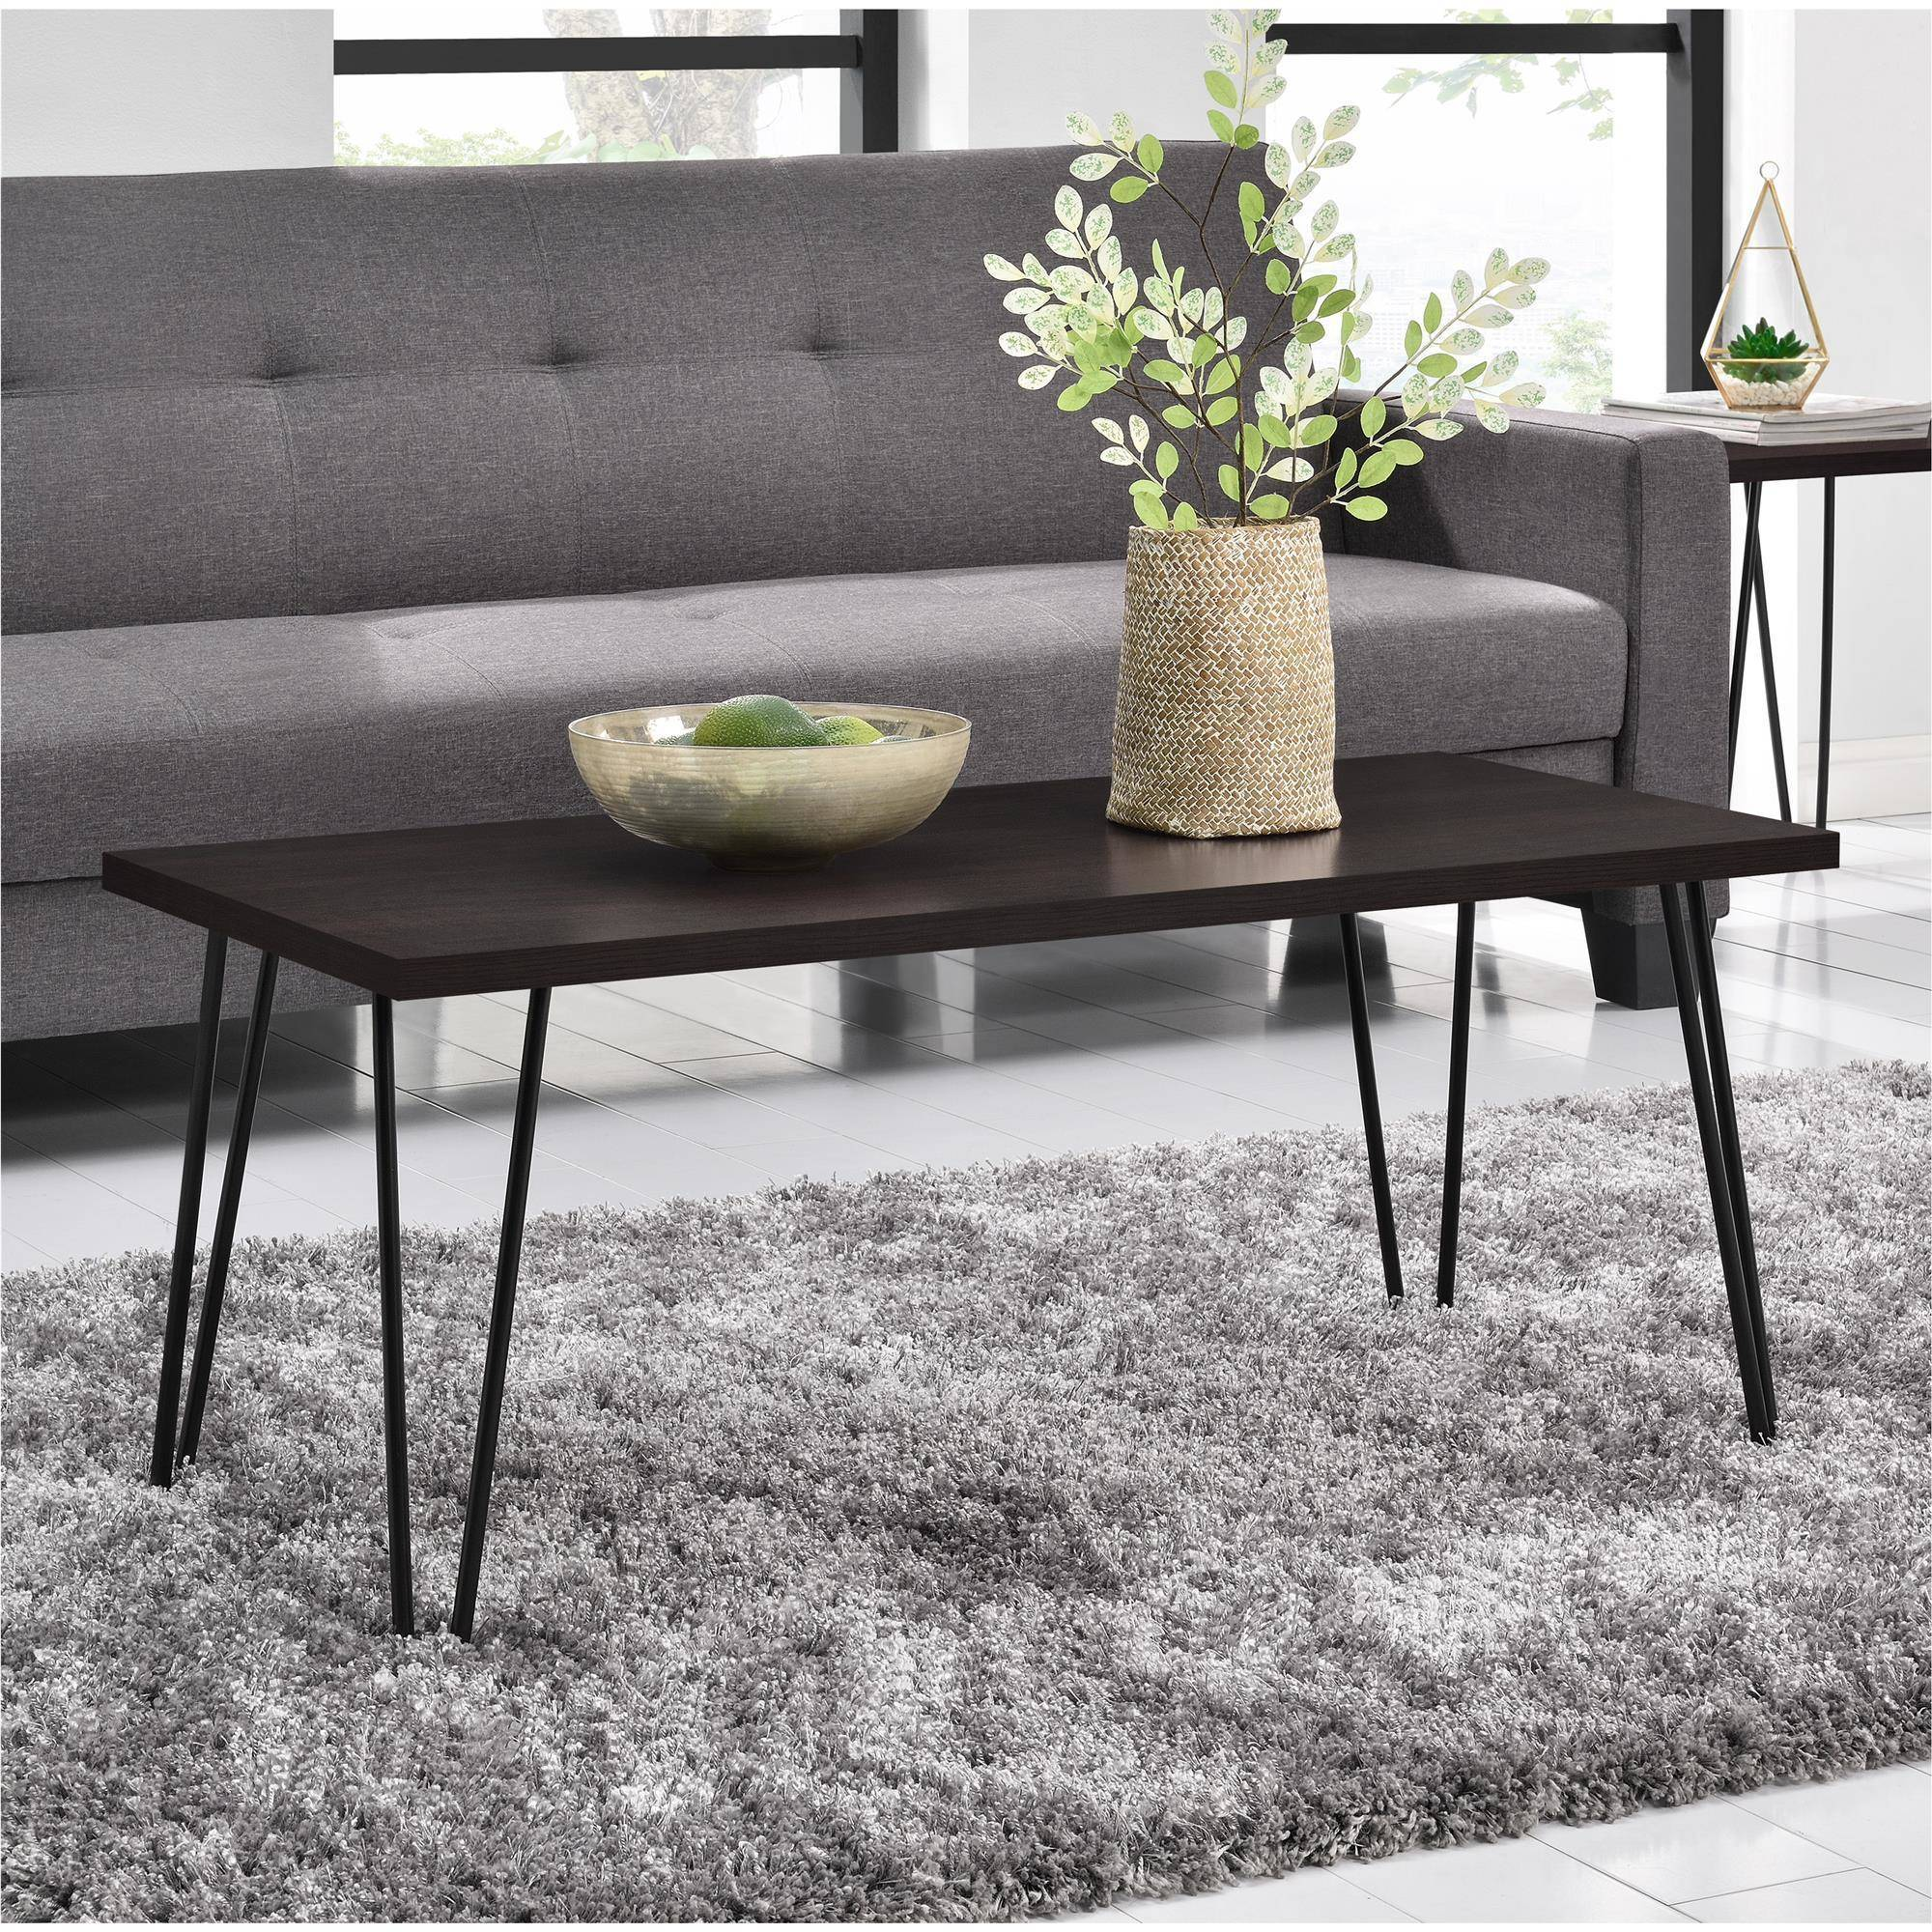 Mainstays Retro Coffee Table, Multiple Colors